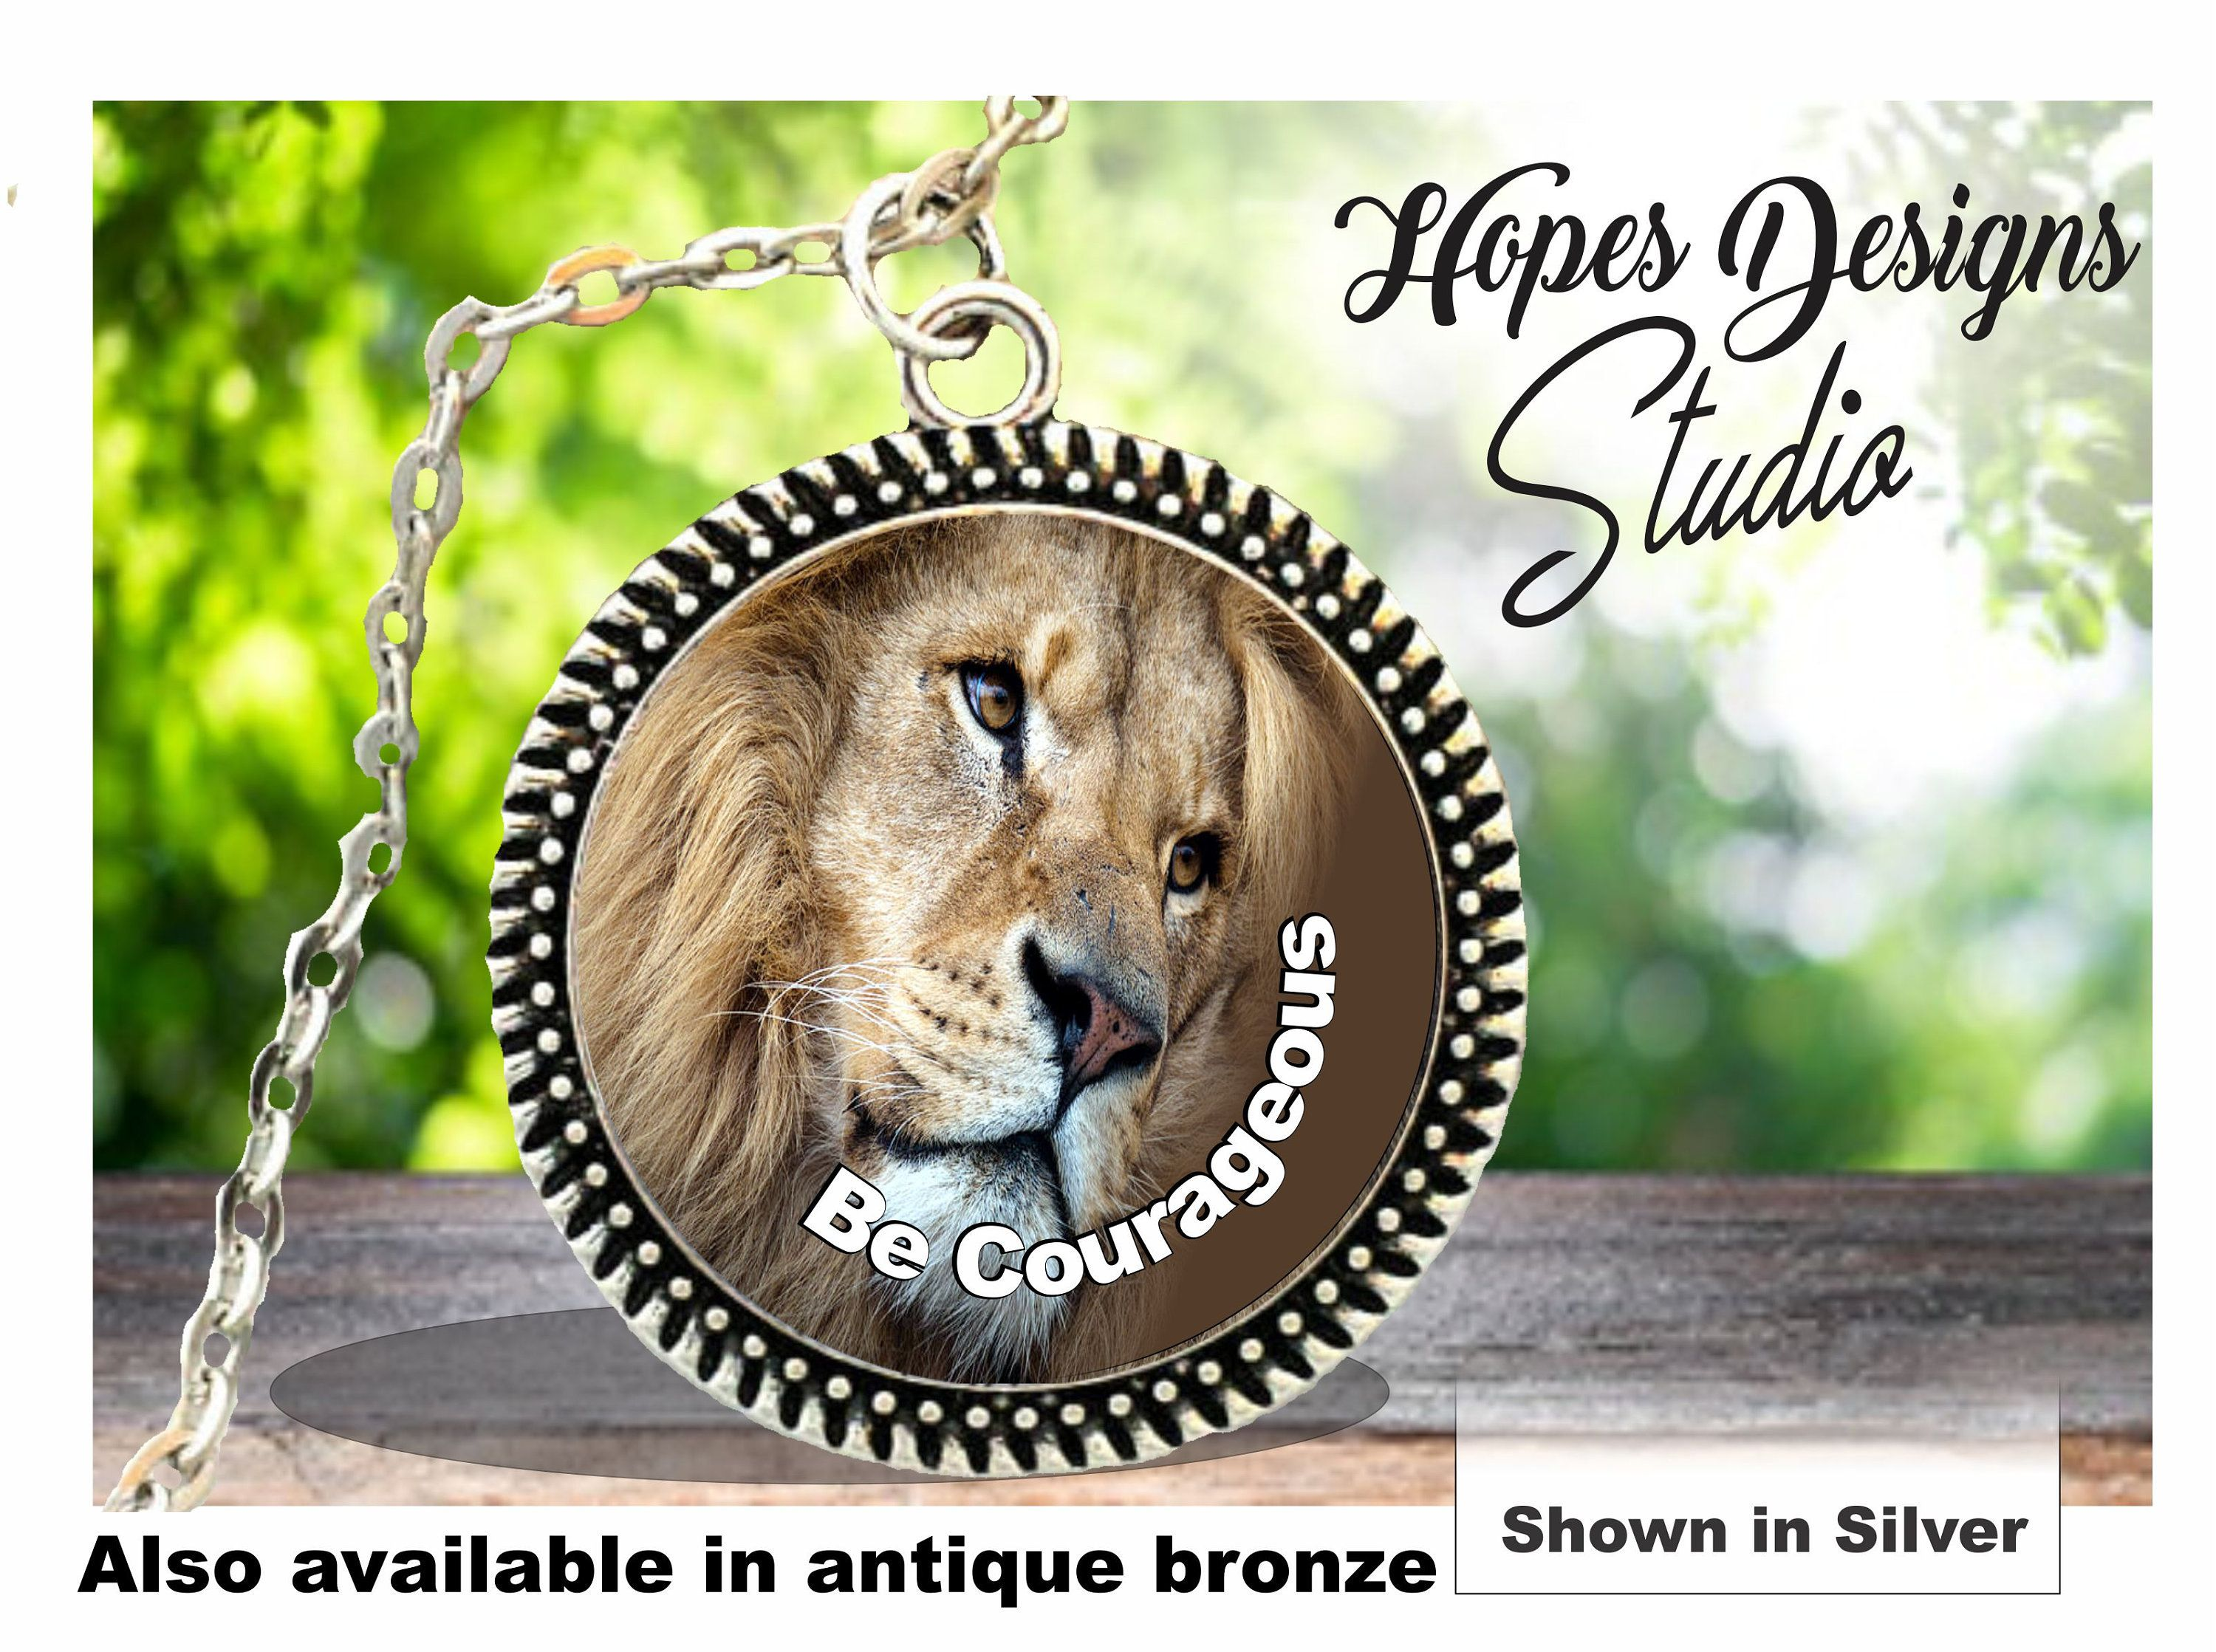 JW gifts/JW necklace 'Be Courageous' beautiful lion design/jw org